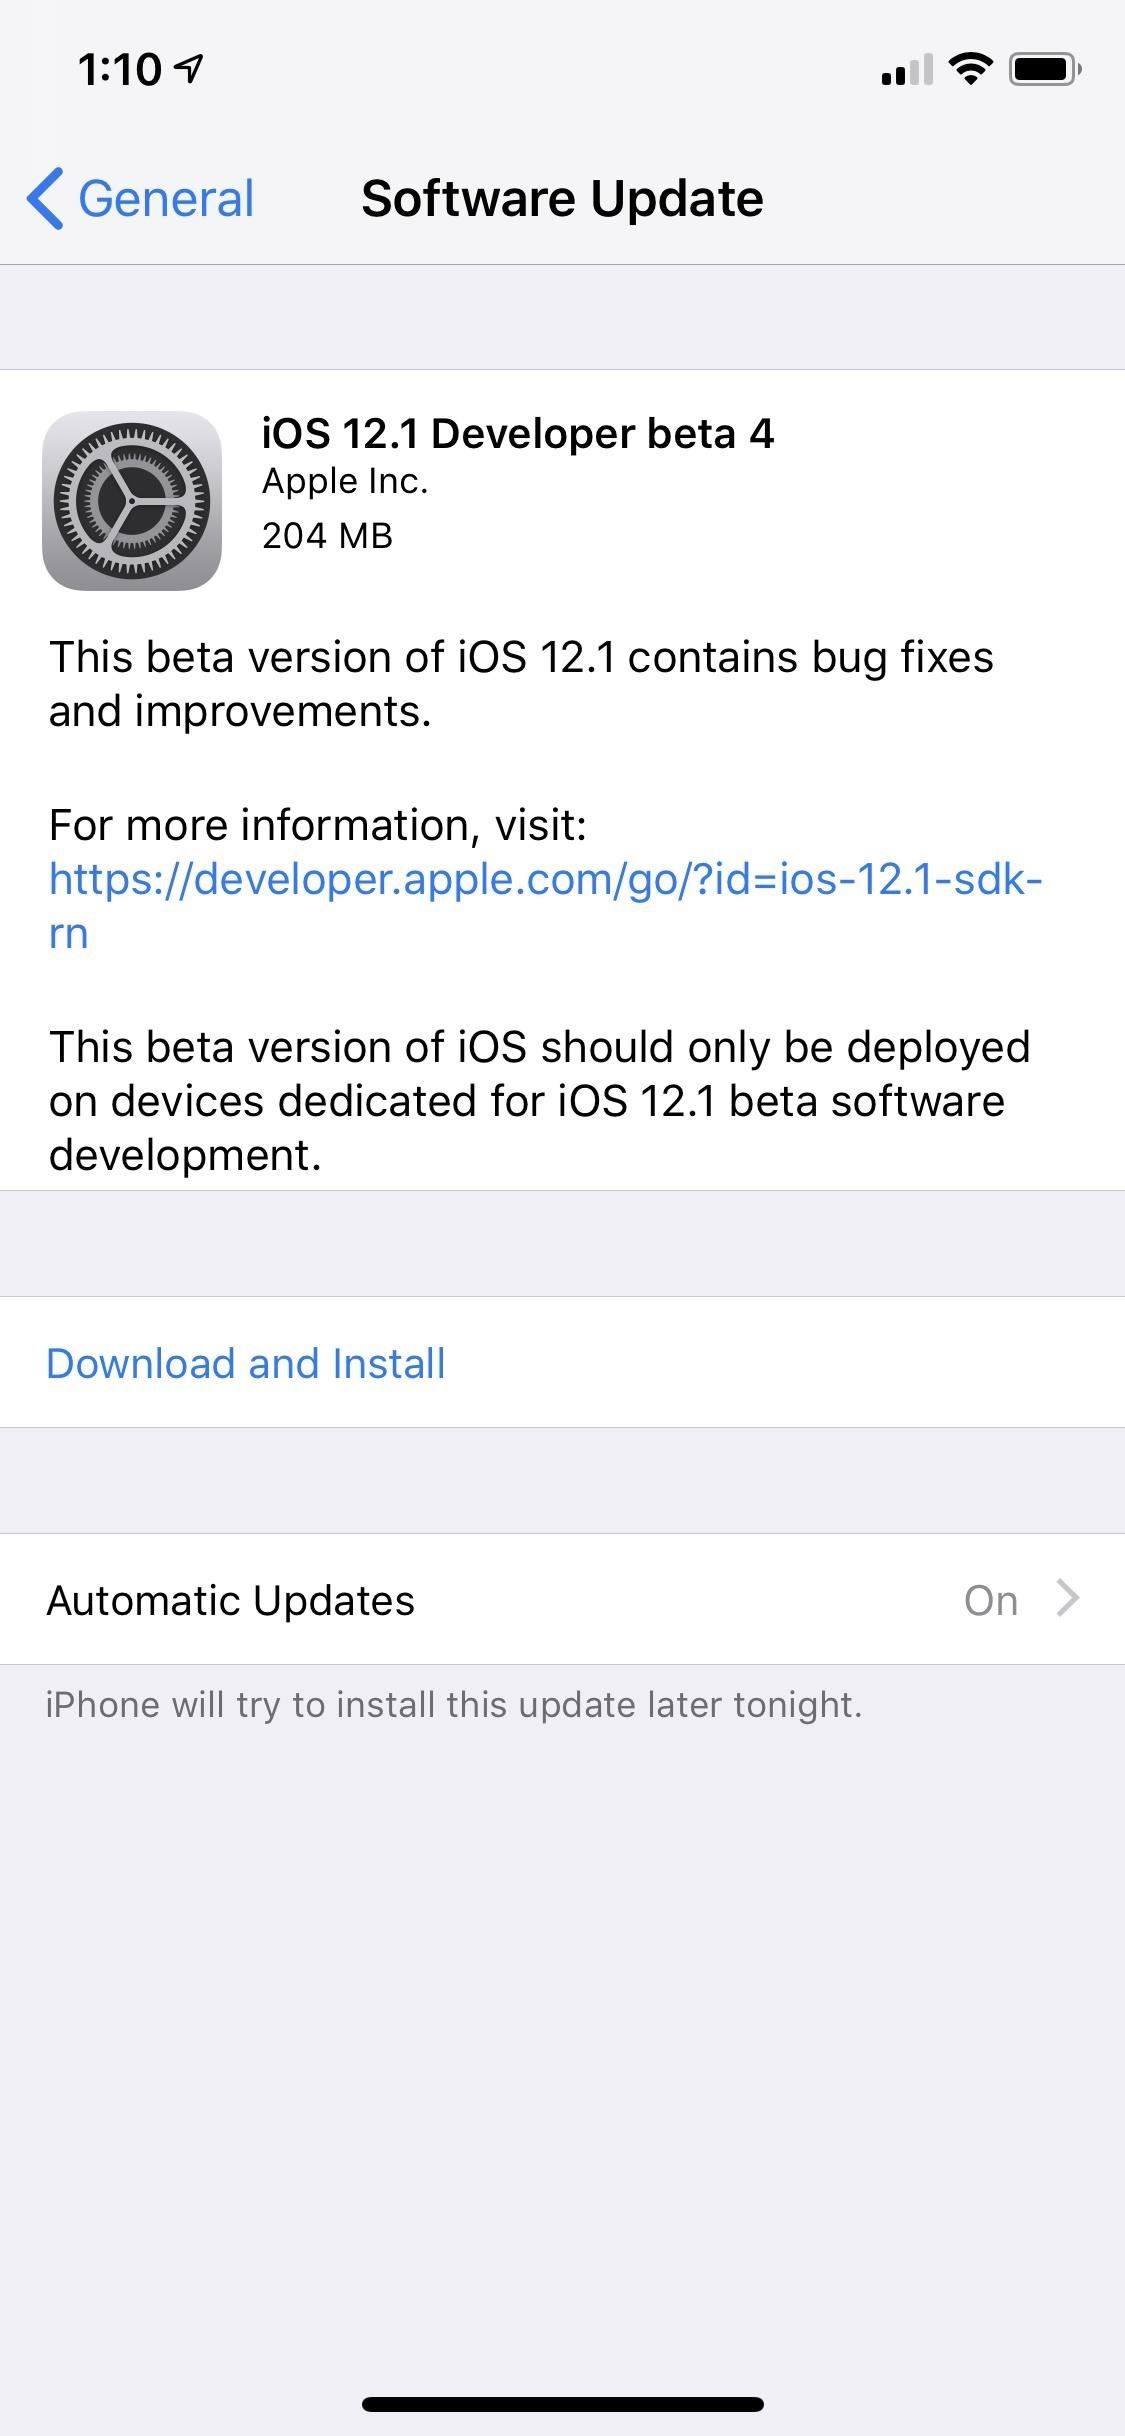 Apple Just Released iOS 12.1 Developer Beta 4 to Testers